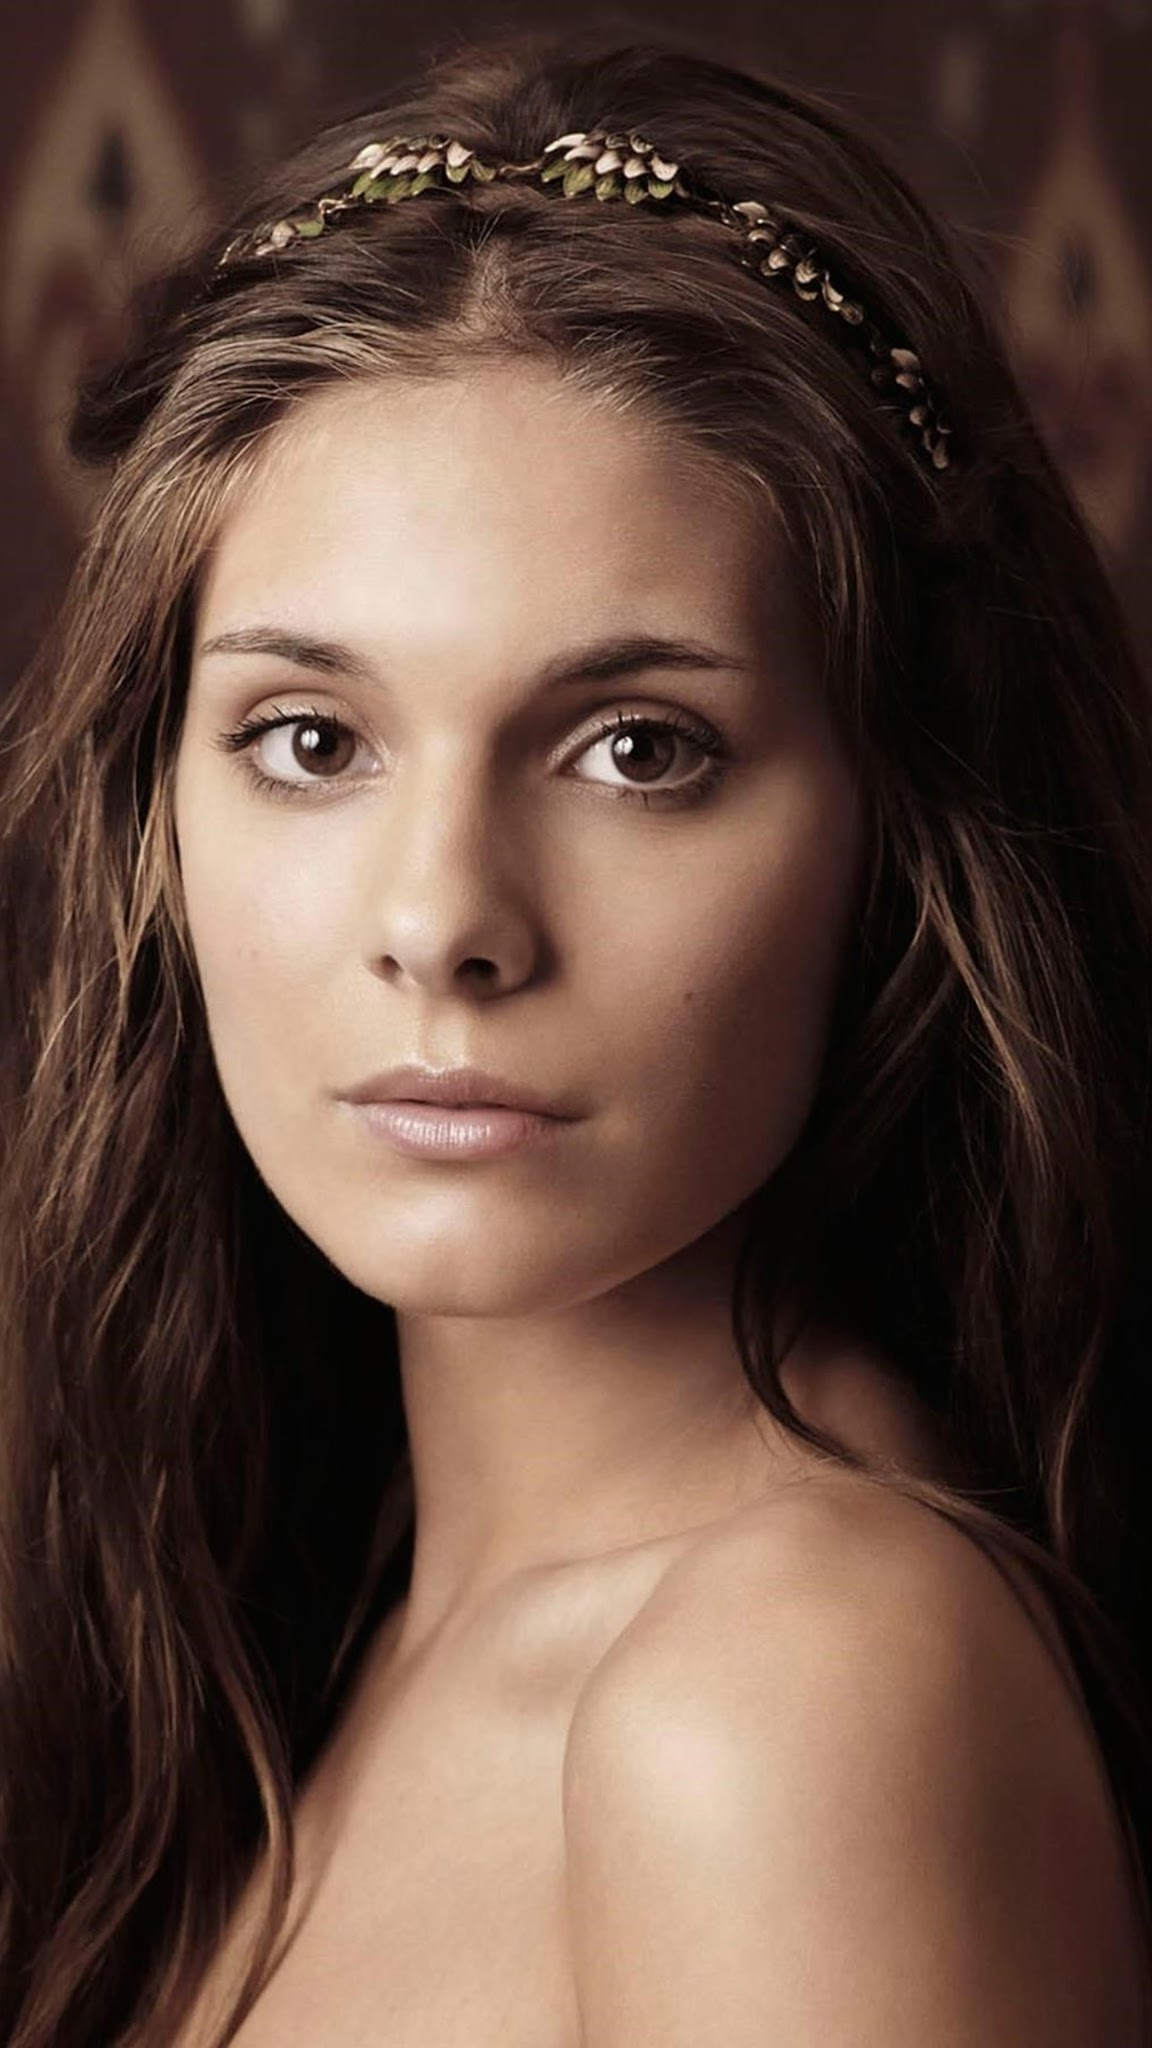 Caitlin Stasey HD Images and Wallpapers